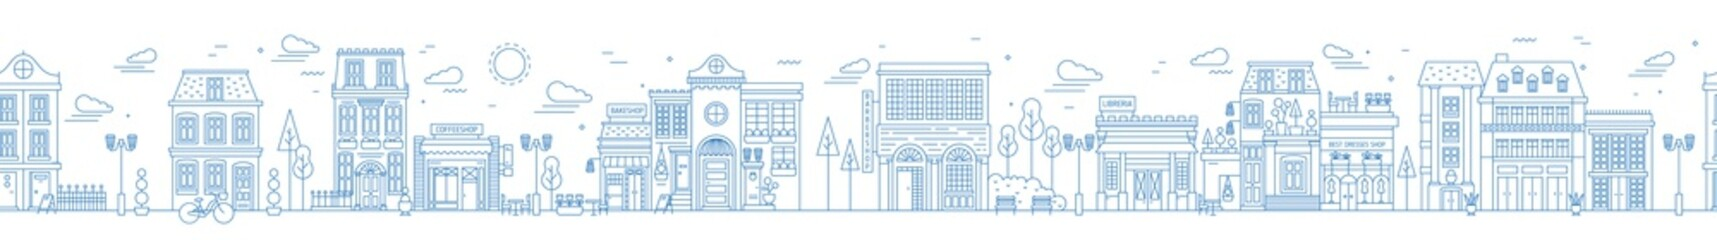 Monochrome seamless urban landscape with city street or district. Cityscape with residential houses and shops drawn with contour lines on white background. Vector illustration in lineart style.